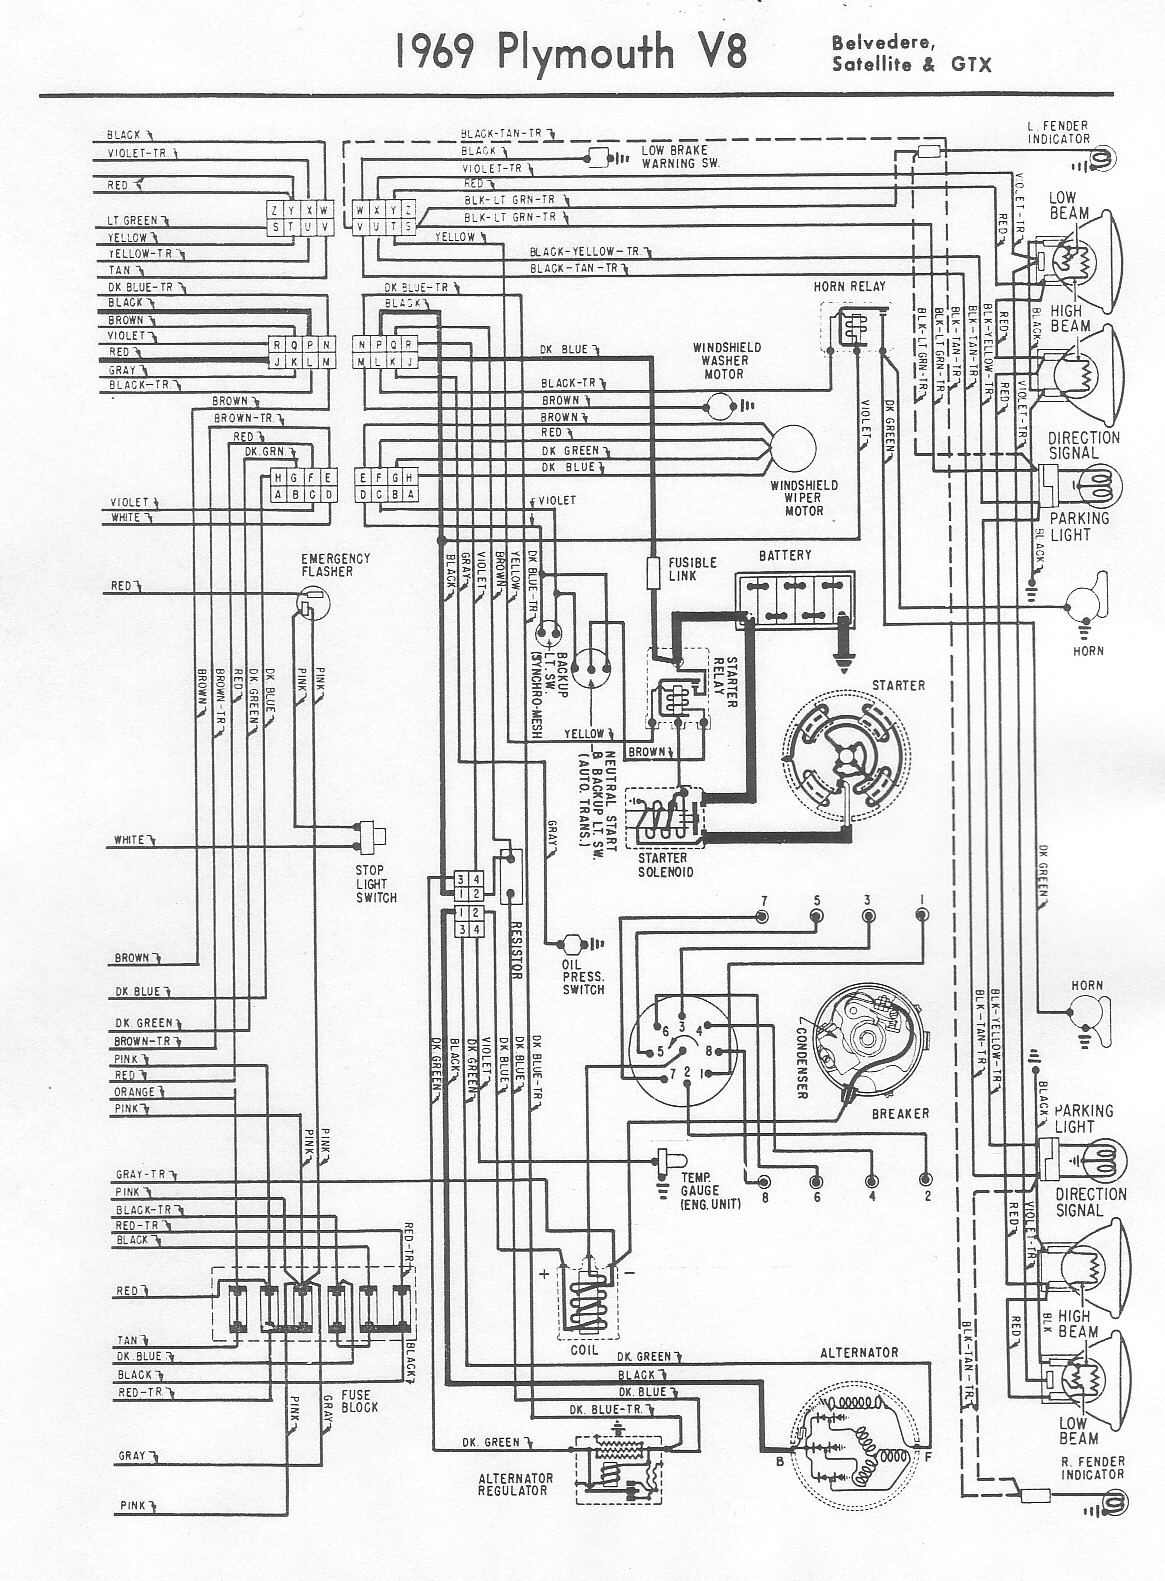 1972 Dodge Dart 340 Electronic Ignition Wiring Diagram Online Plymouth Vacuum 1970 Duster Todays Rh 13 8 4 1813weddingbarn Com 1973